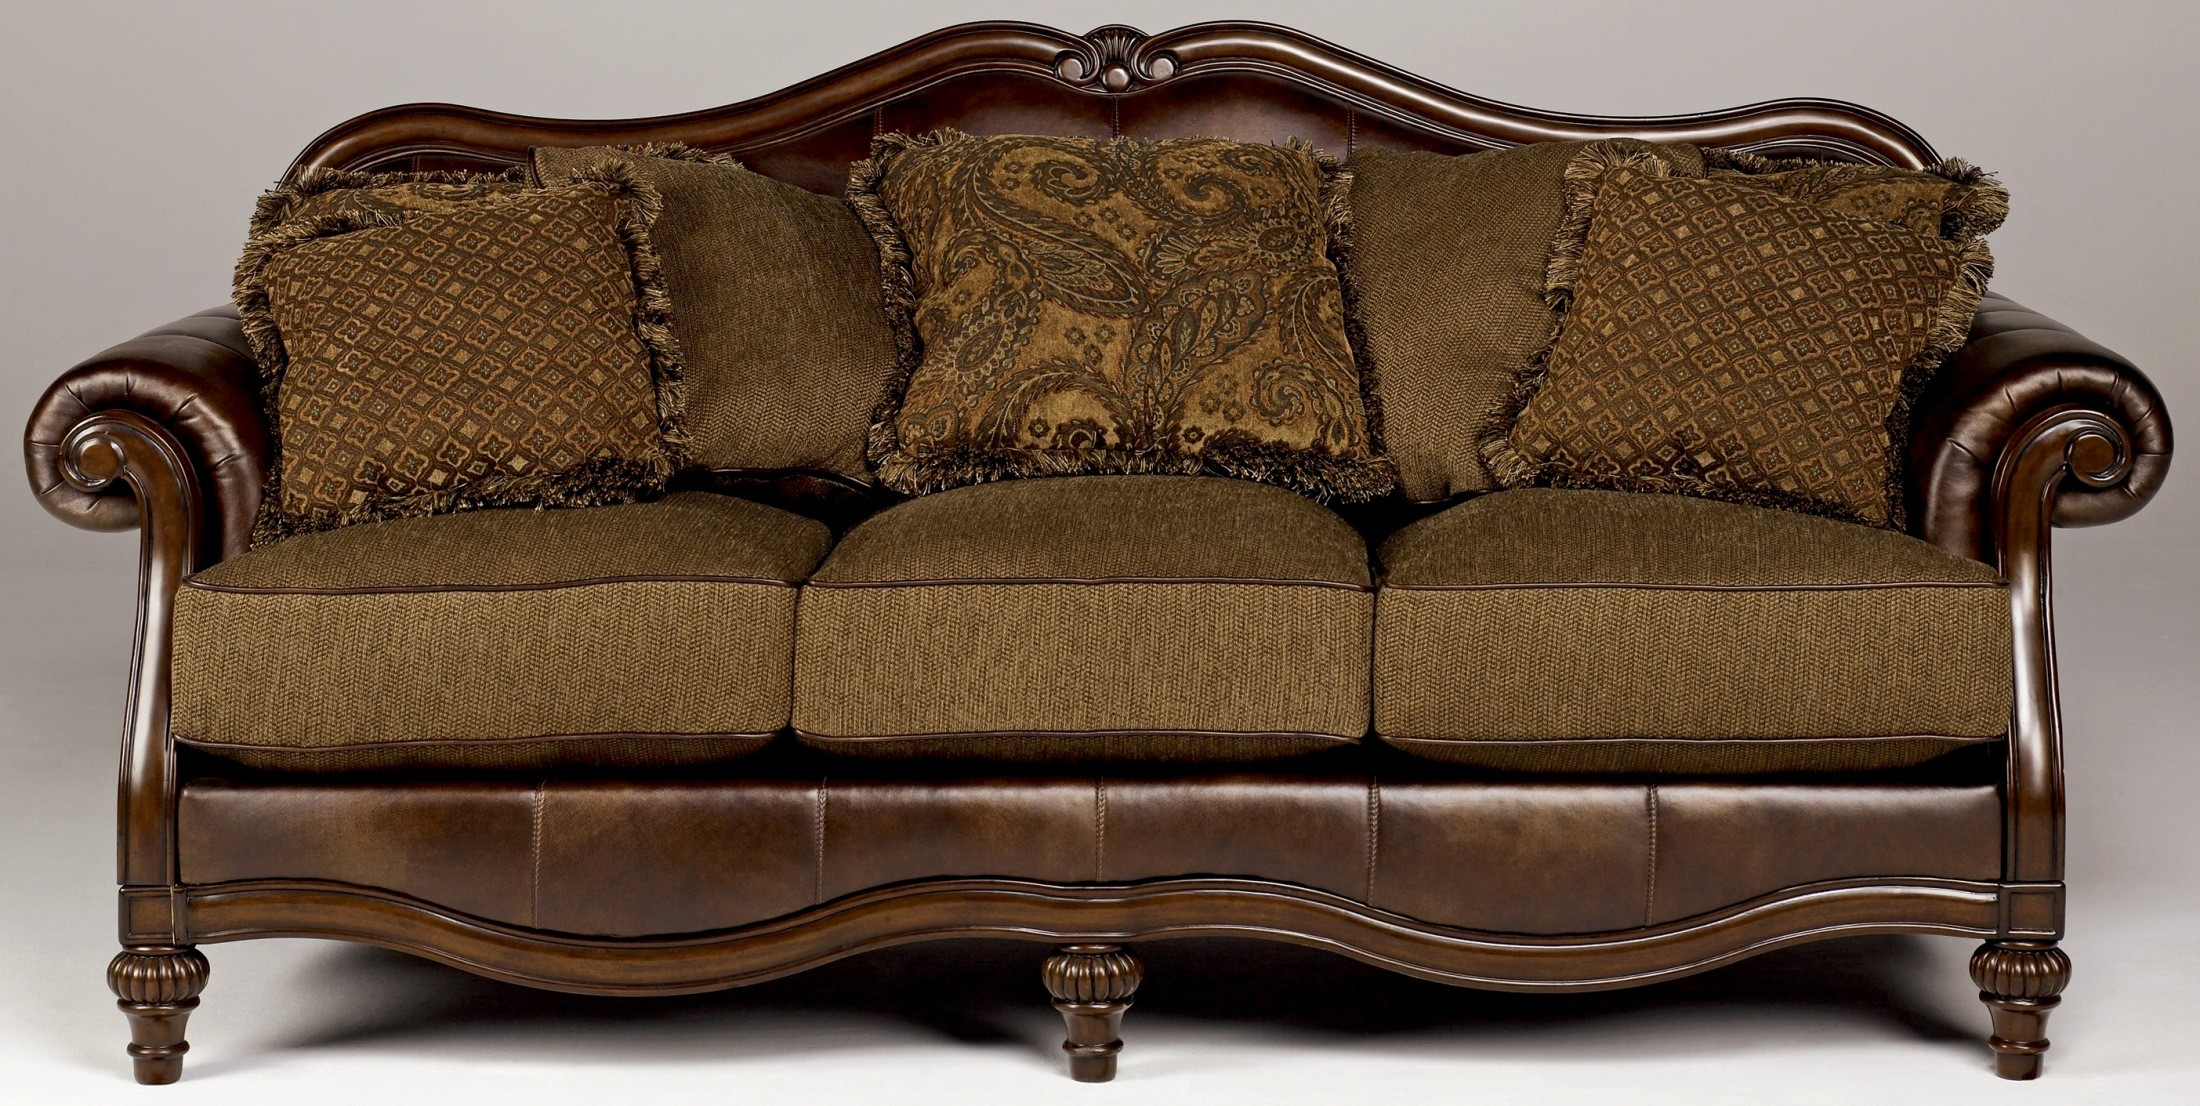 Claremore Antique Sofa from Ashley (8430338) | Coleman ...